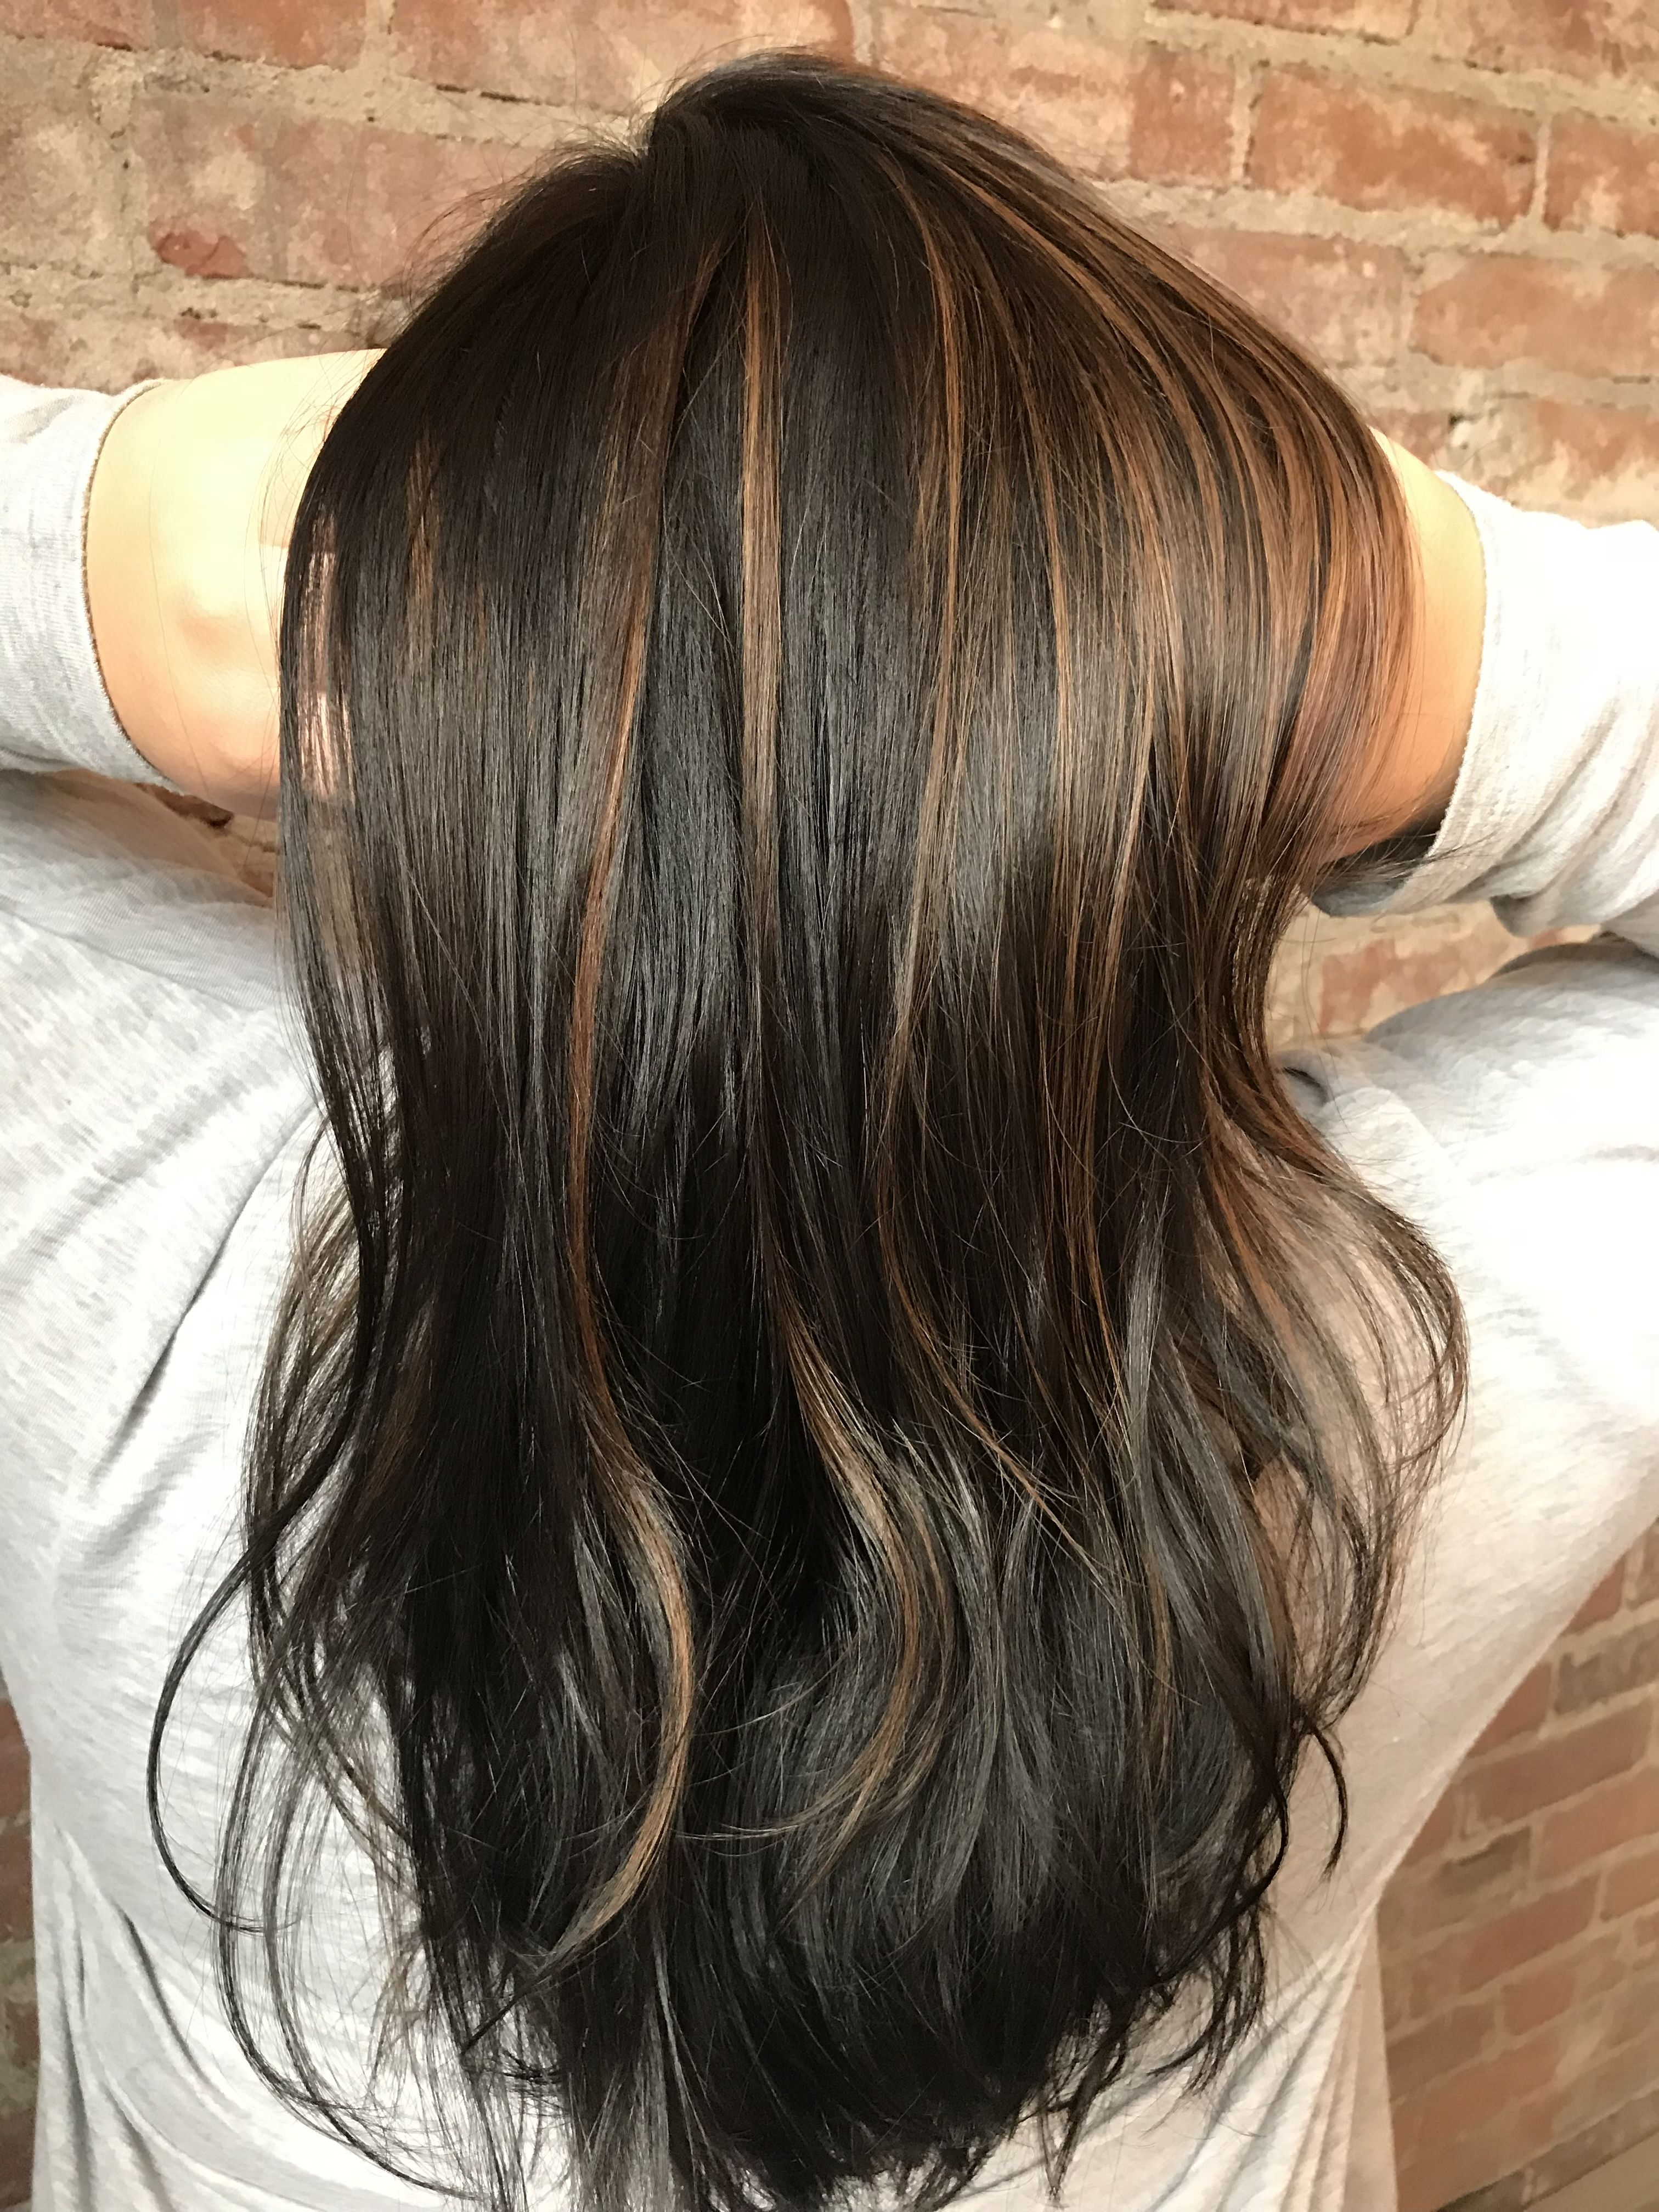 Well Liked Warm Toned Brown Hairstyles With Caramel Balayage Within Caramel Balayage. Brunette Hair. Dark Brown Hair (View 10 of 20)